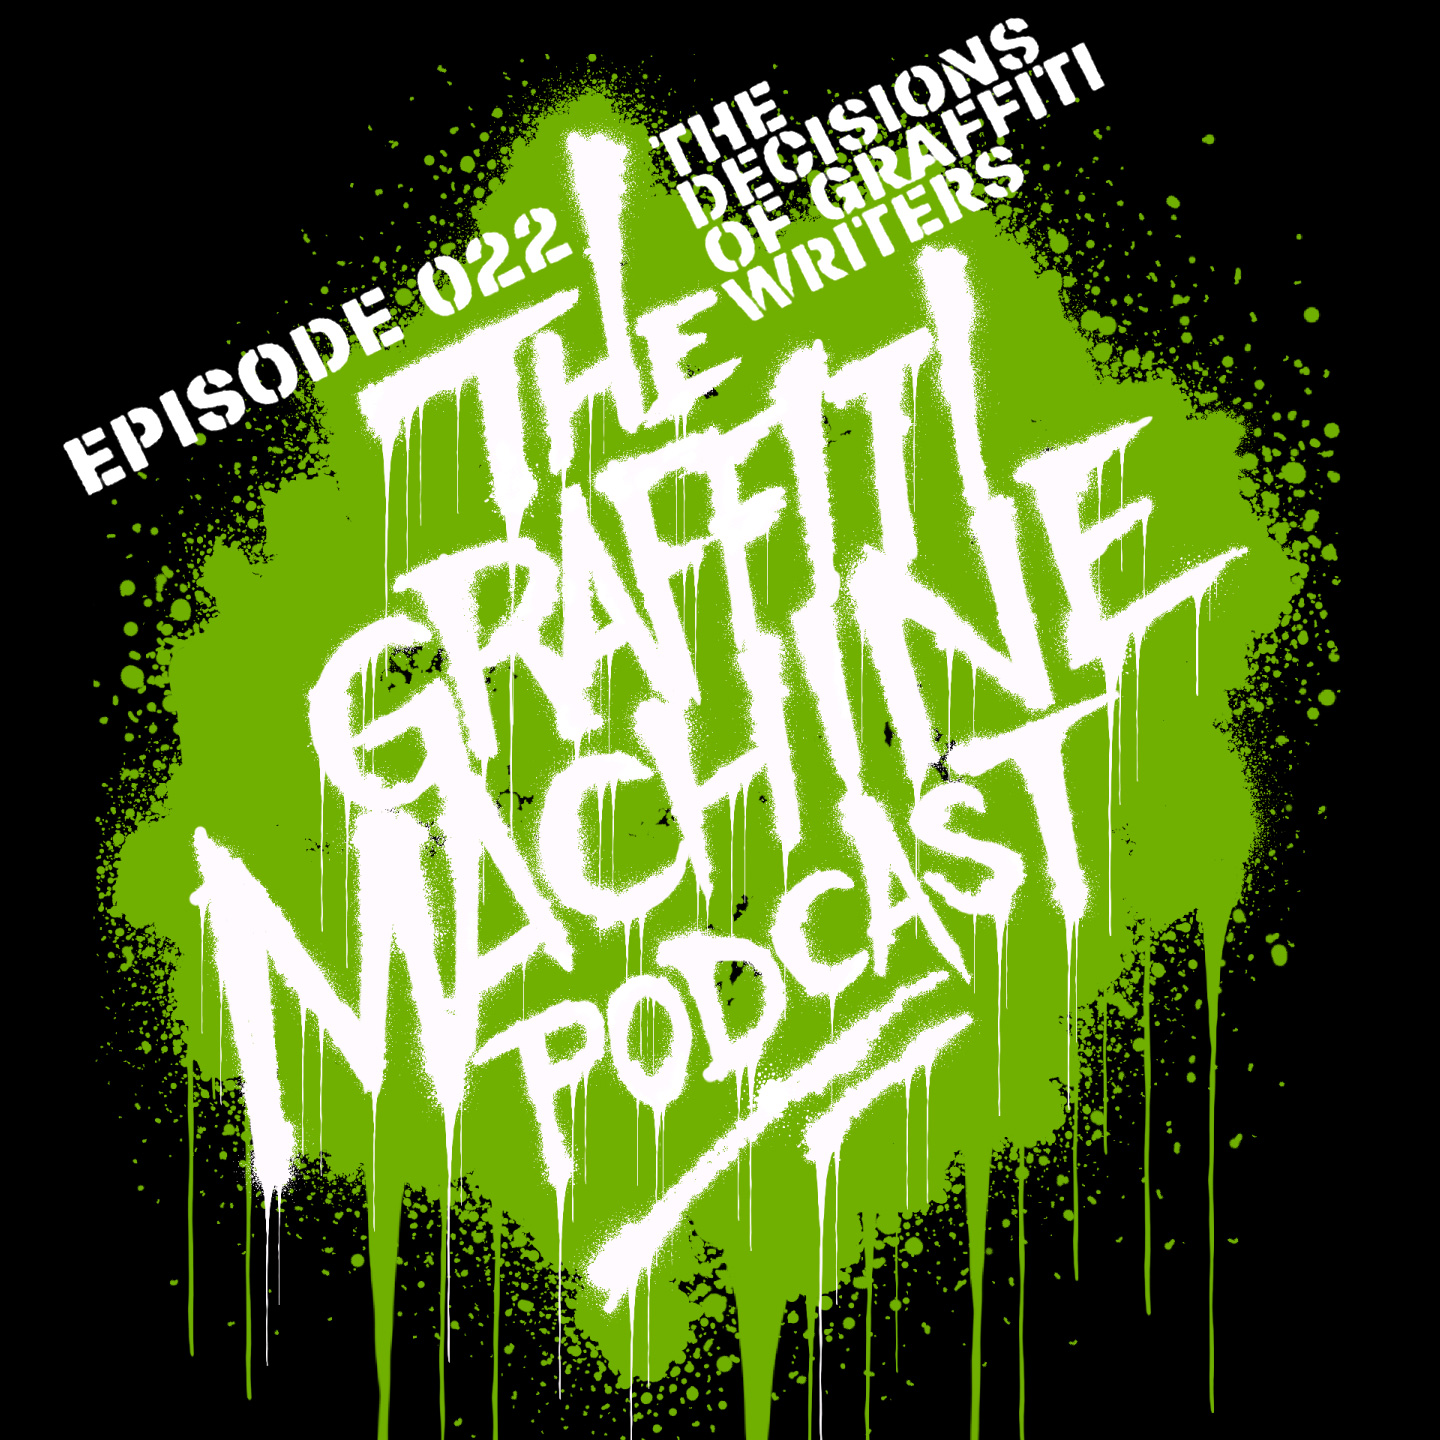 022: The Decisions of Graffiti Writers